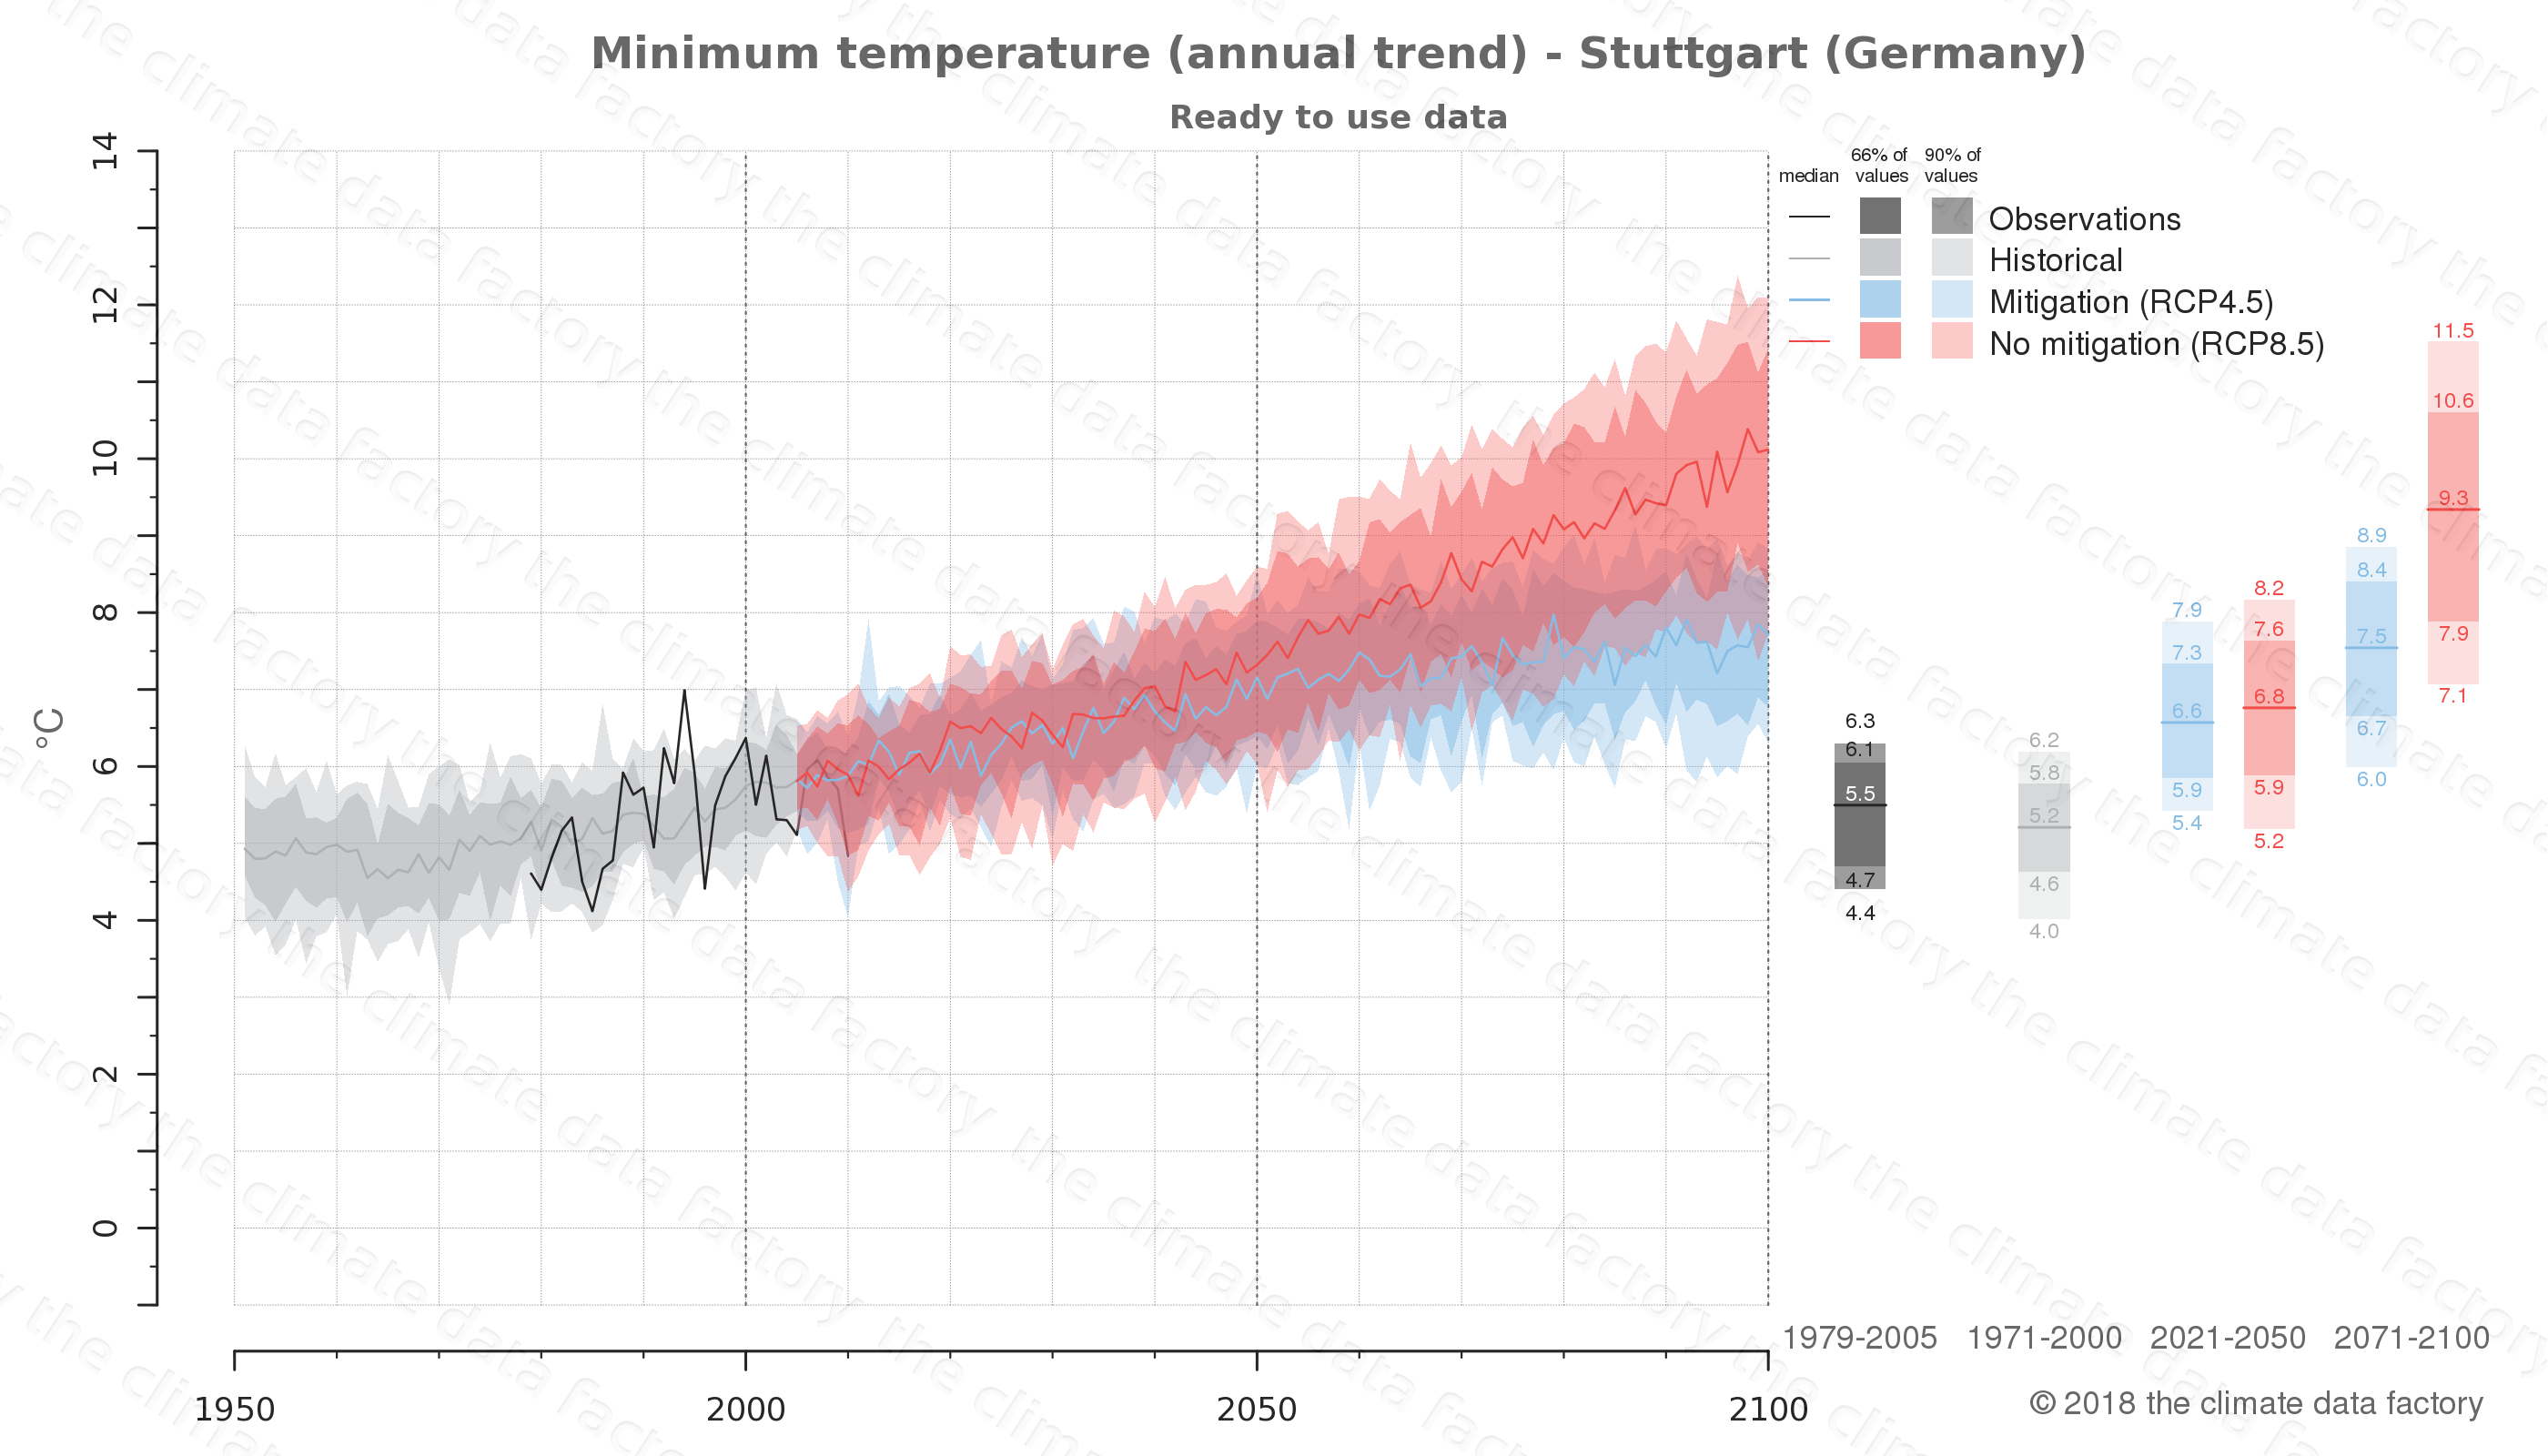 climate change data policy adaptation climate graph city data minimum-temperature stuttgart germany